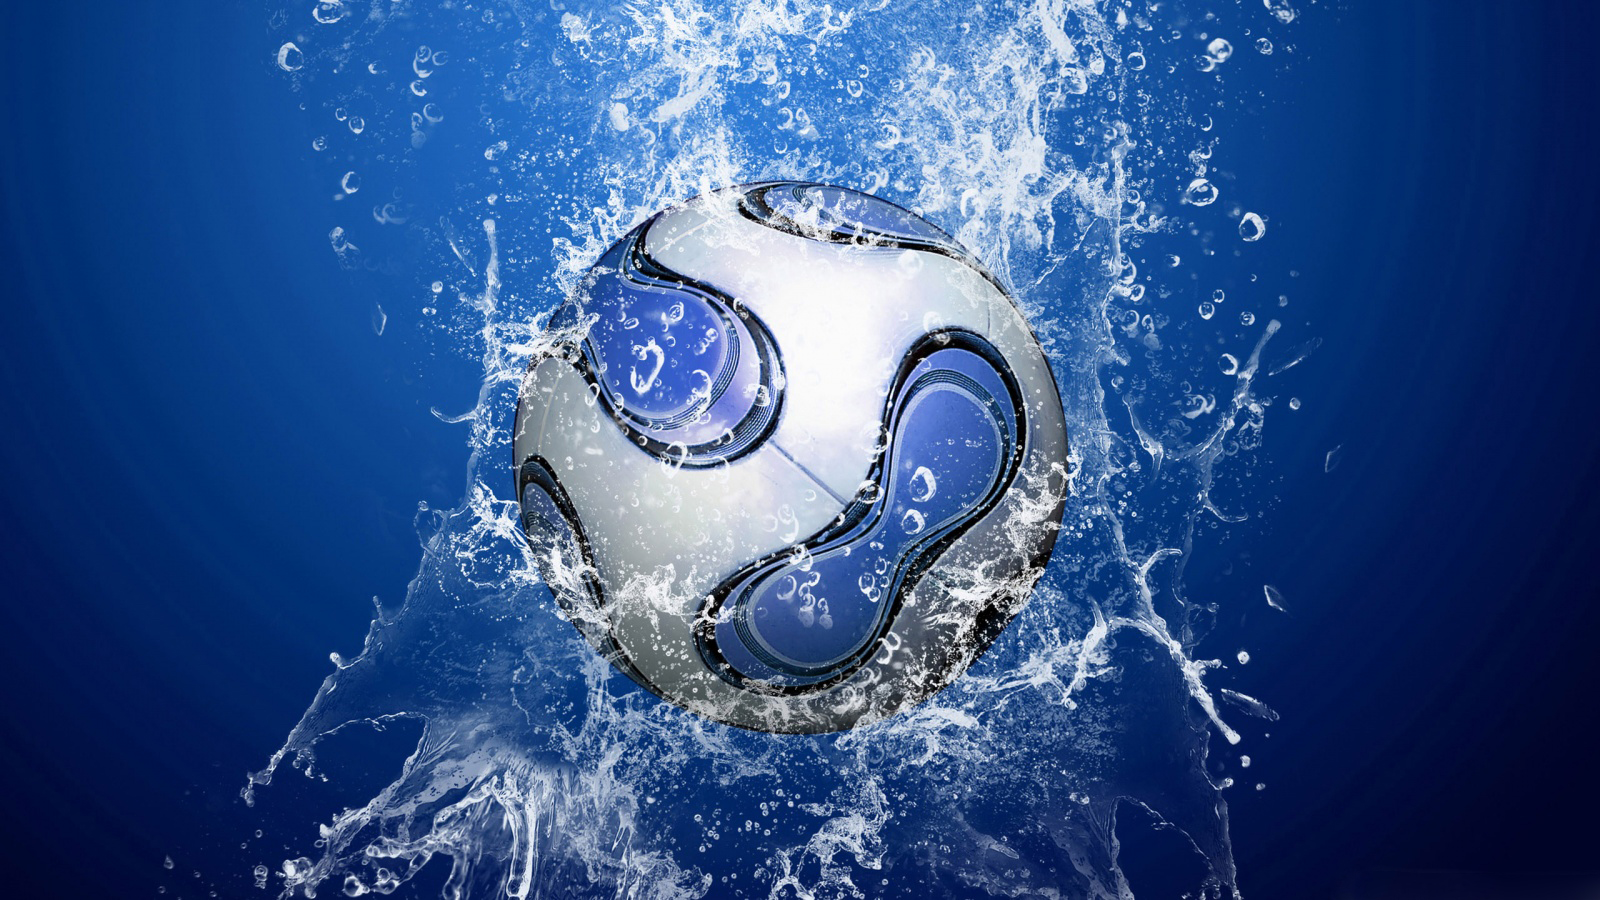 Splash Waters Art Sports Wallpaper